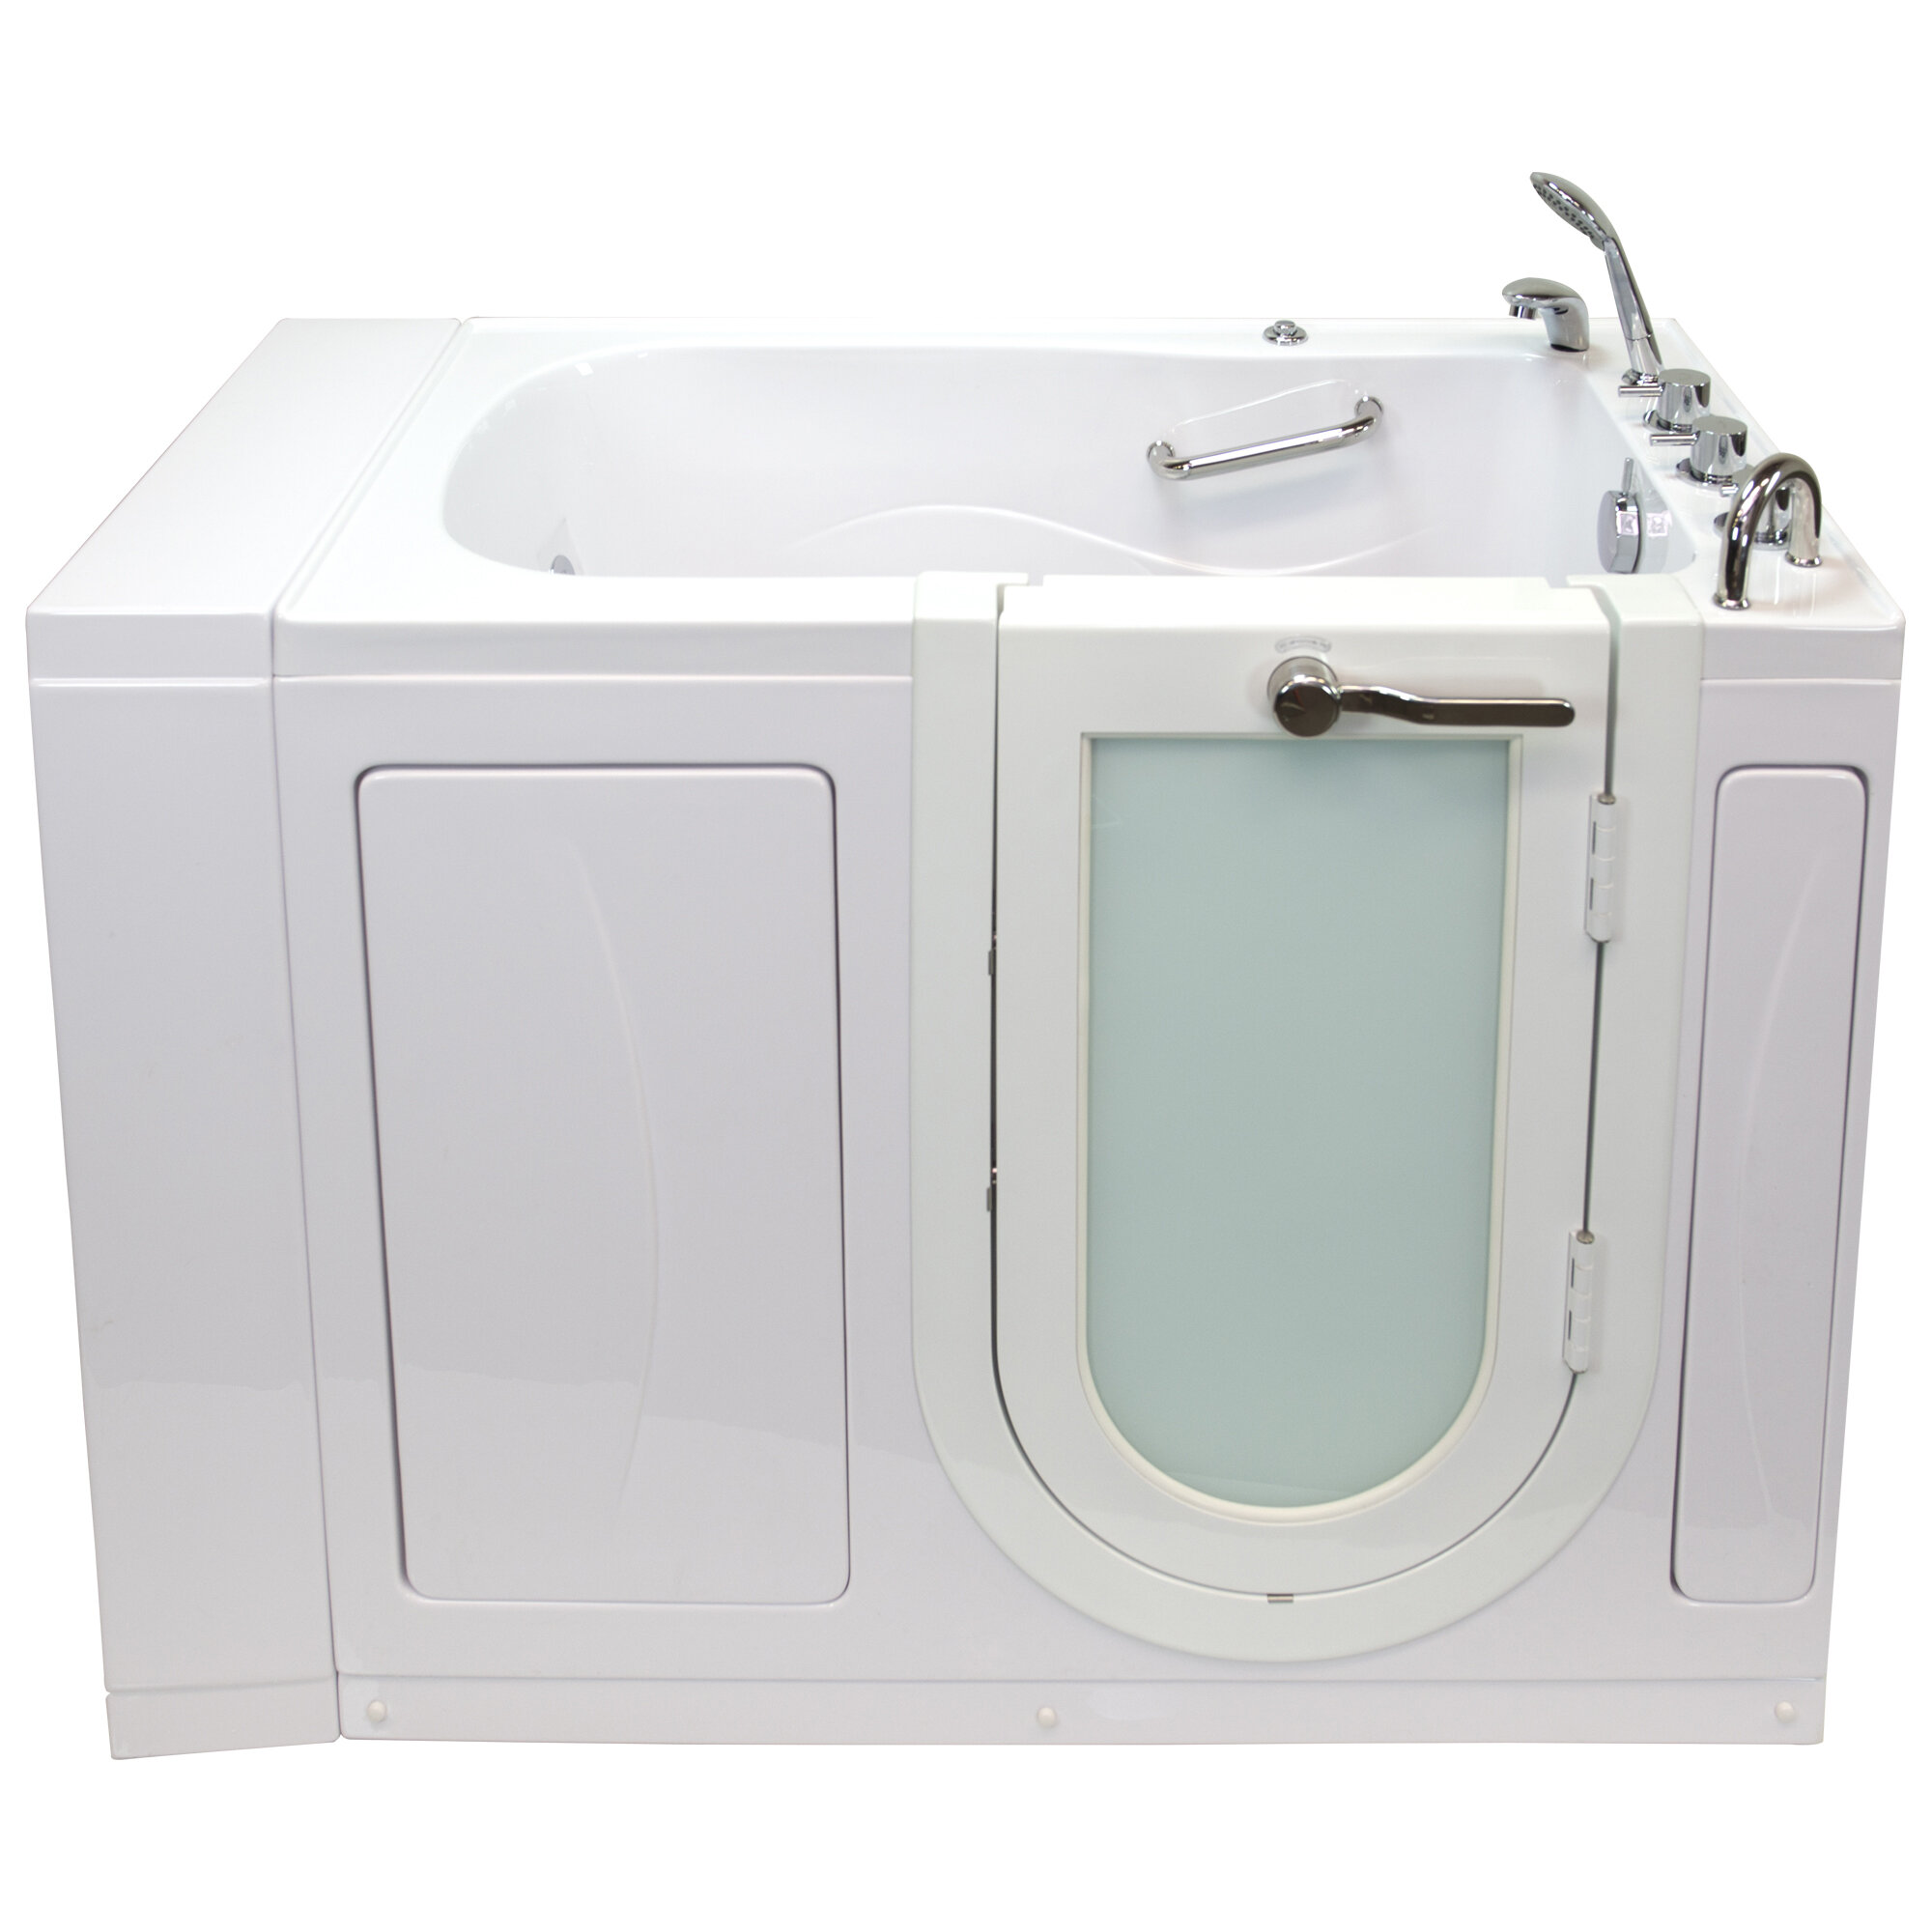 Ella Walk In Bath Monaco Hydro Massage 52 X 32 Walk In Whirlpool Bathtub With Thermo Faucet Set Wayfair